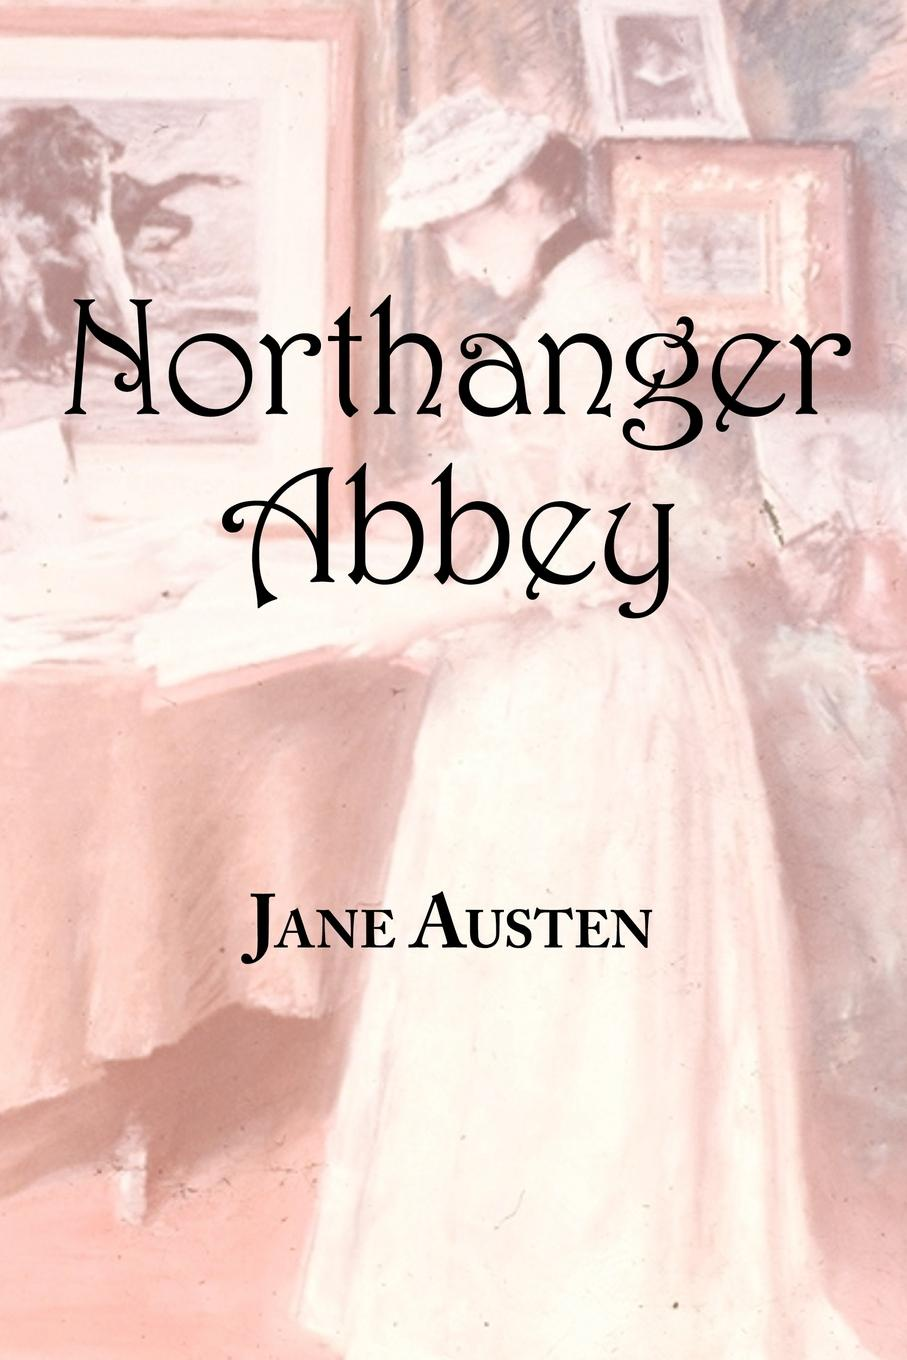 Jane Austen Jane Austen's Northanger Abbey jane